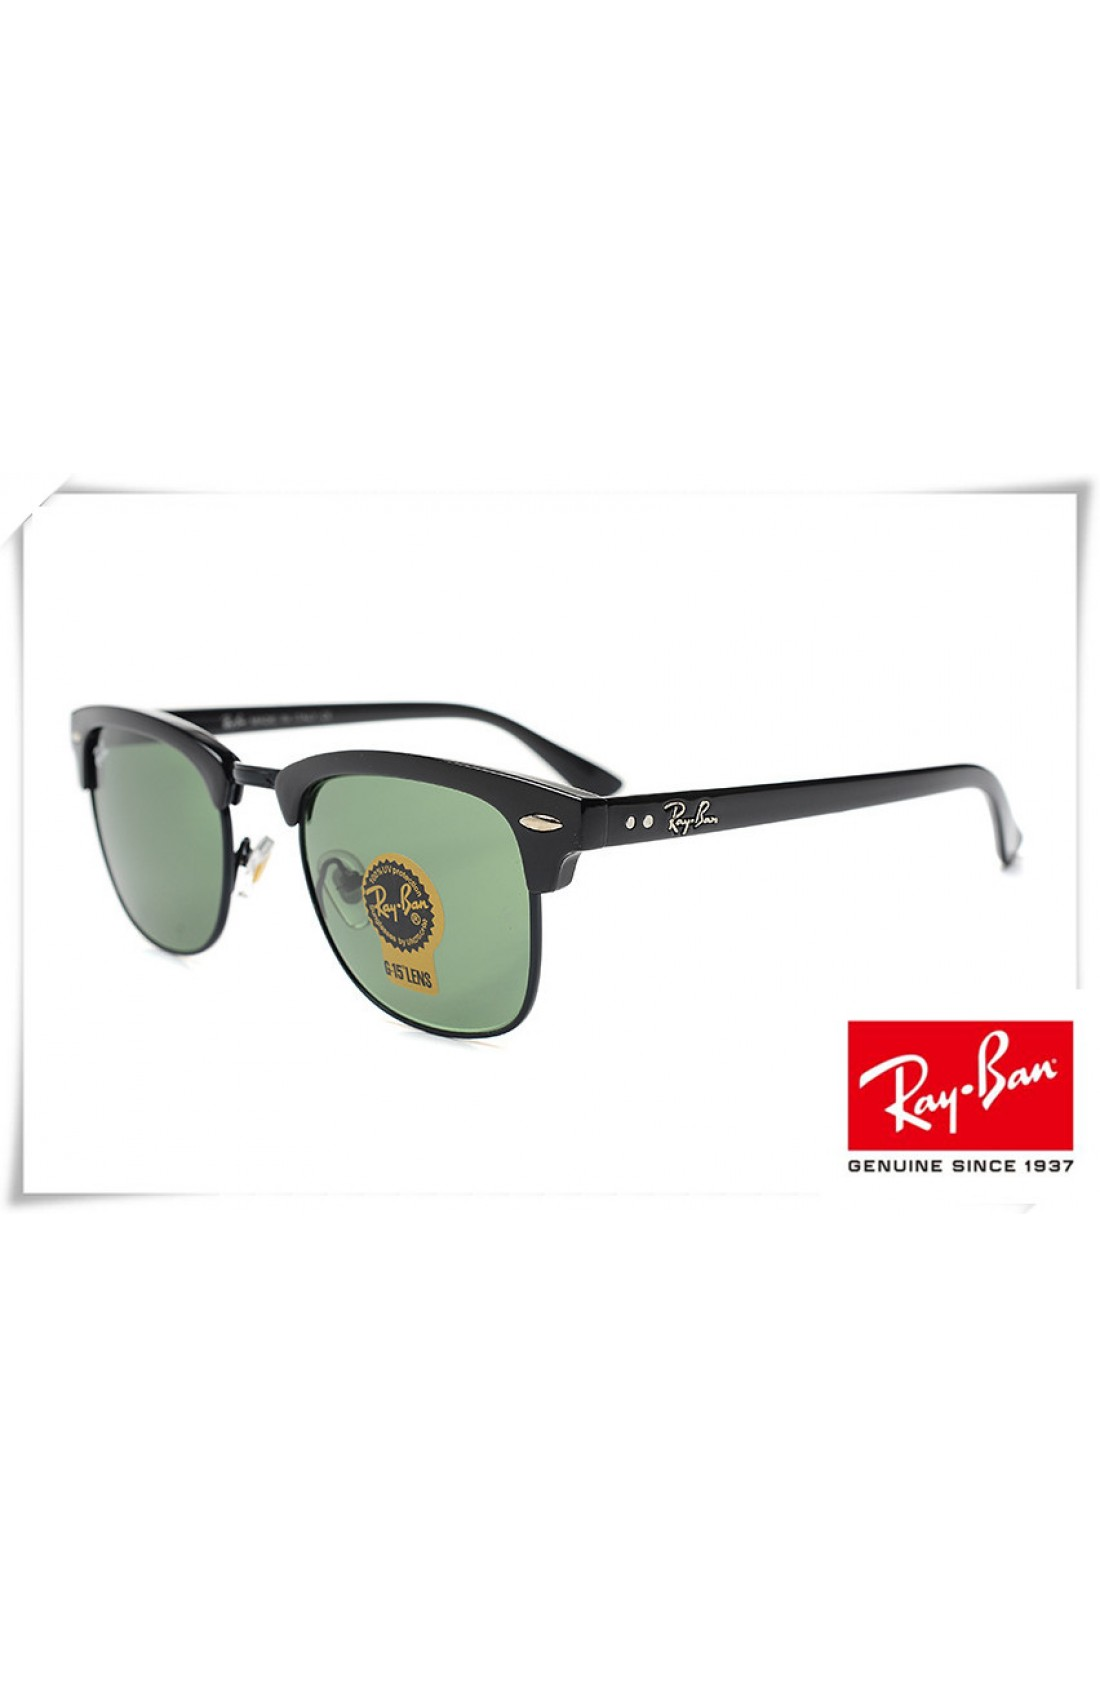 859381e80 Cheap Replica Ray Ban RB3016 Classic Clubmaster Sunglasses Black ...